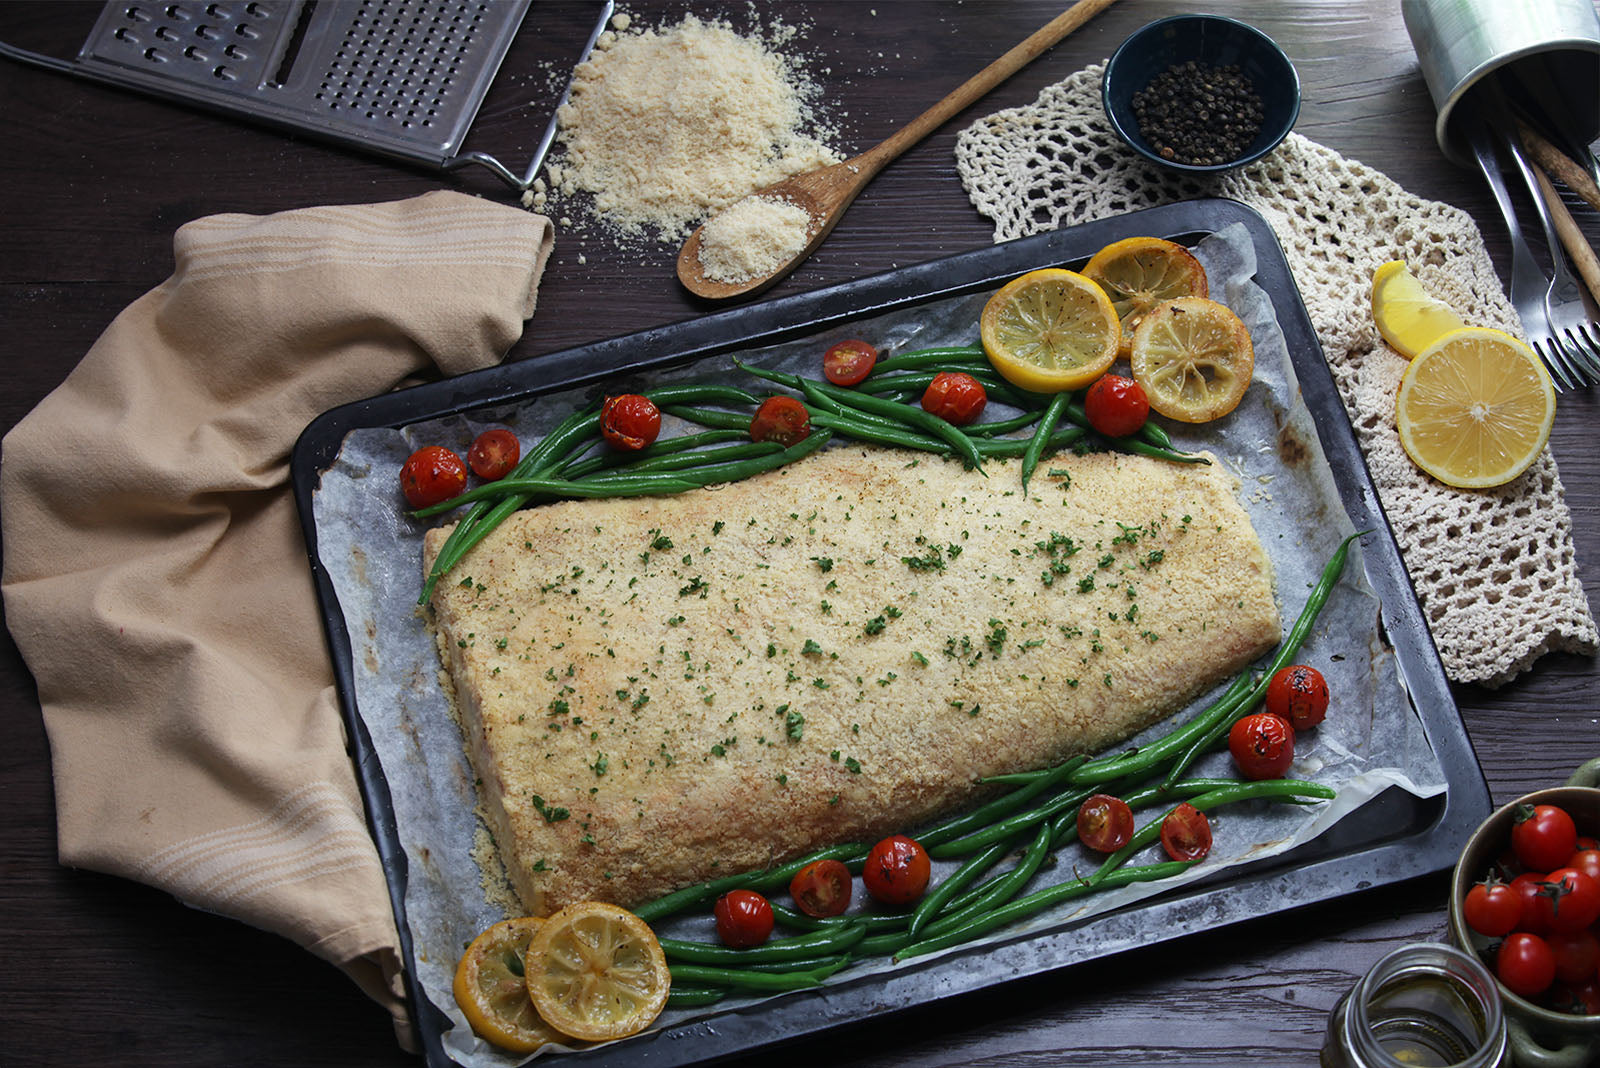 Baked Parmesan Crusted Salmon for sale | Benedicto Kitchen